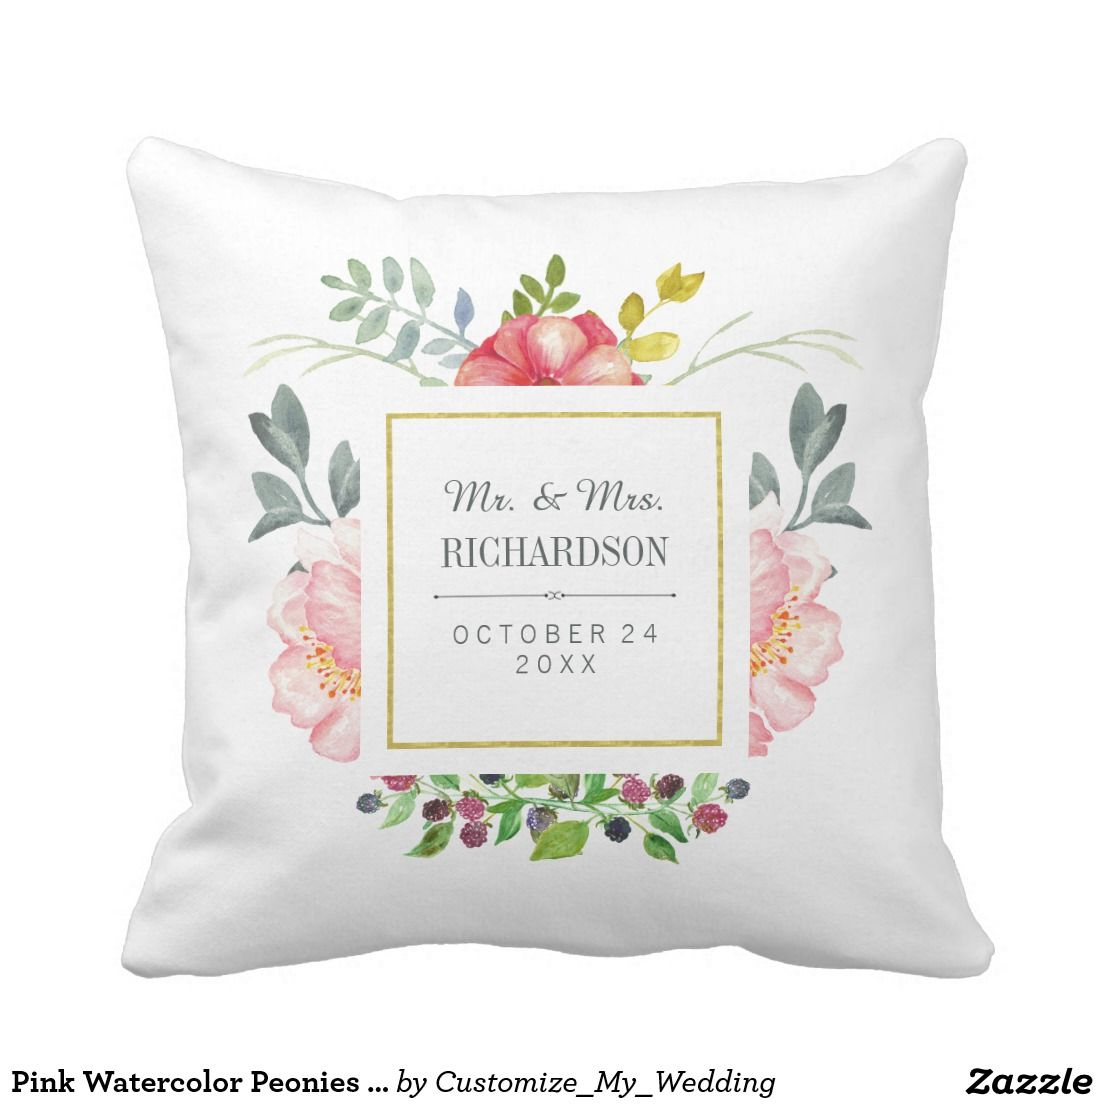 Pink watercolor peonies wedding gift throw pillow by